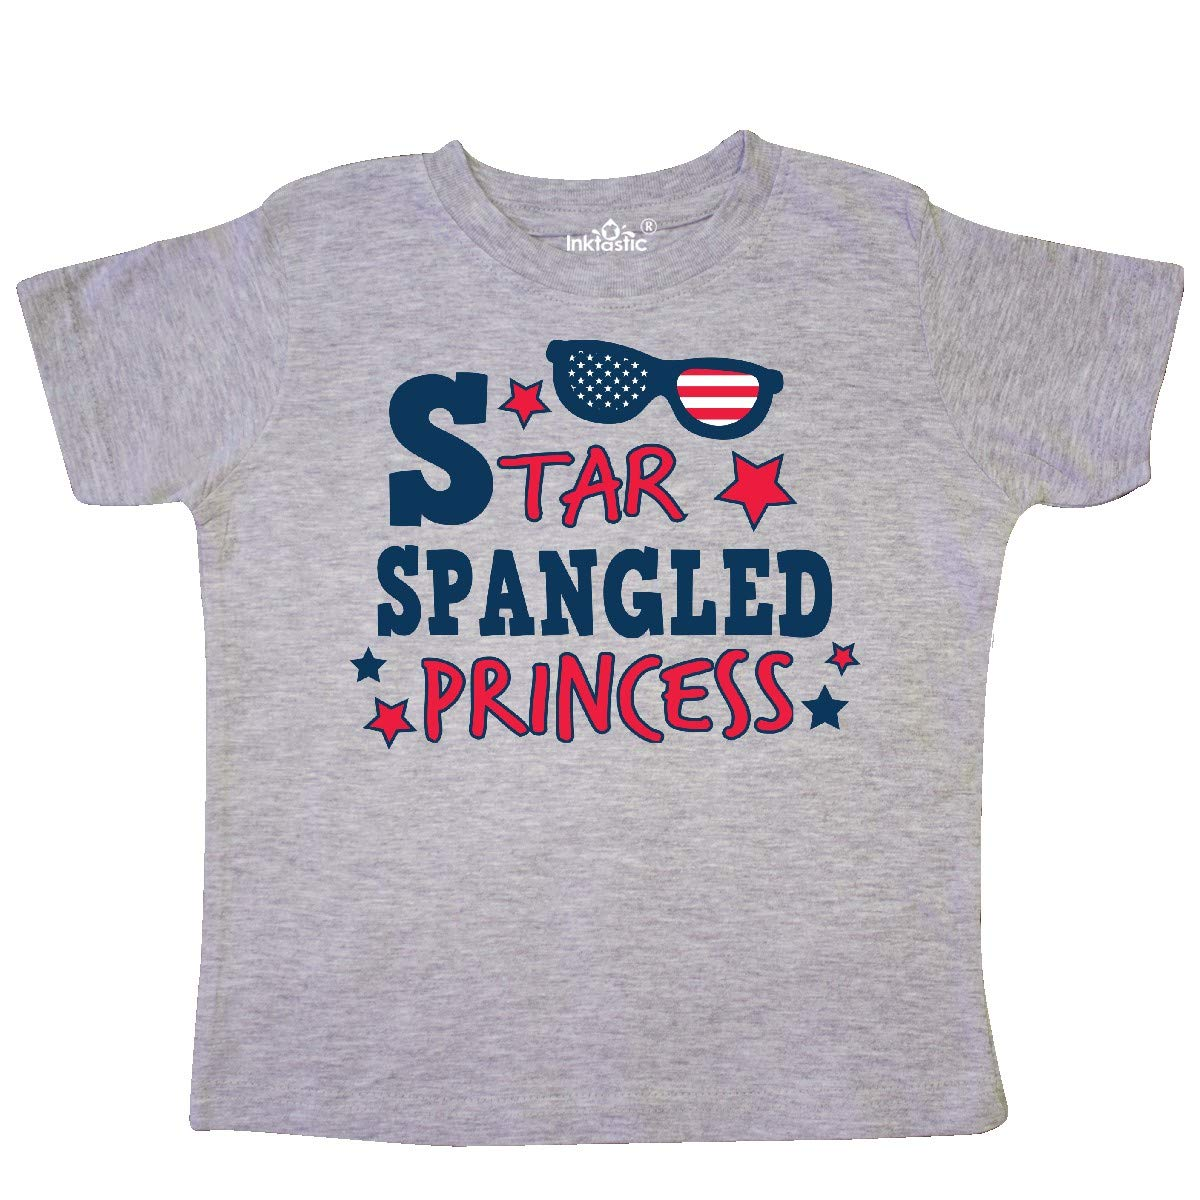 inktastic Star Spangled Princess with Sunglasses and Stars Toddler T-Shirt